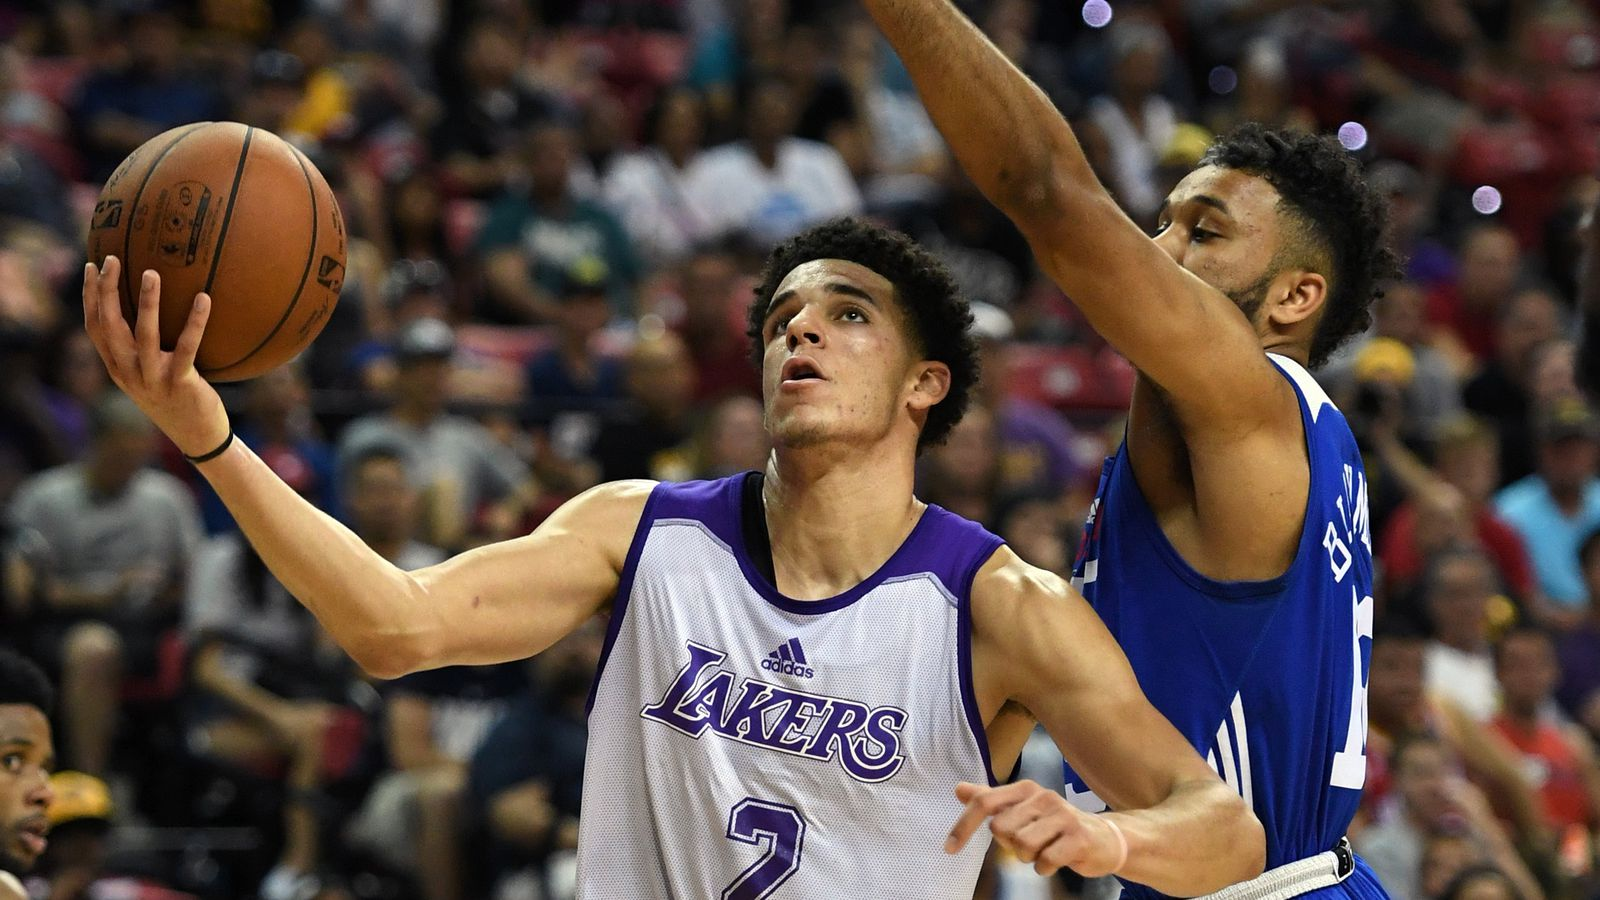 La Lakers Lonzo Ball Stats >> Watch: Highlights of Lonzo Ball's breakout Las Vegas Summer League performance against the 76ers ...